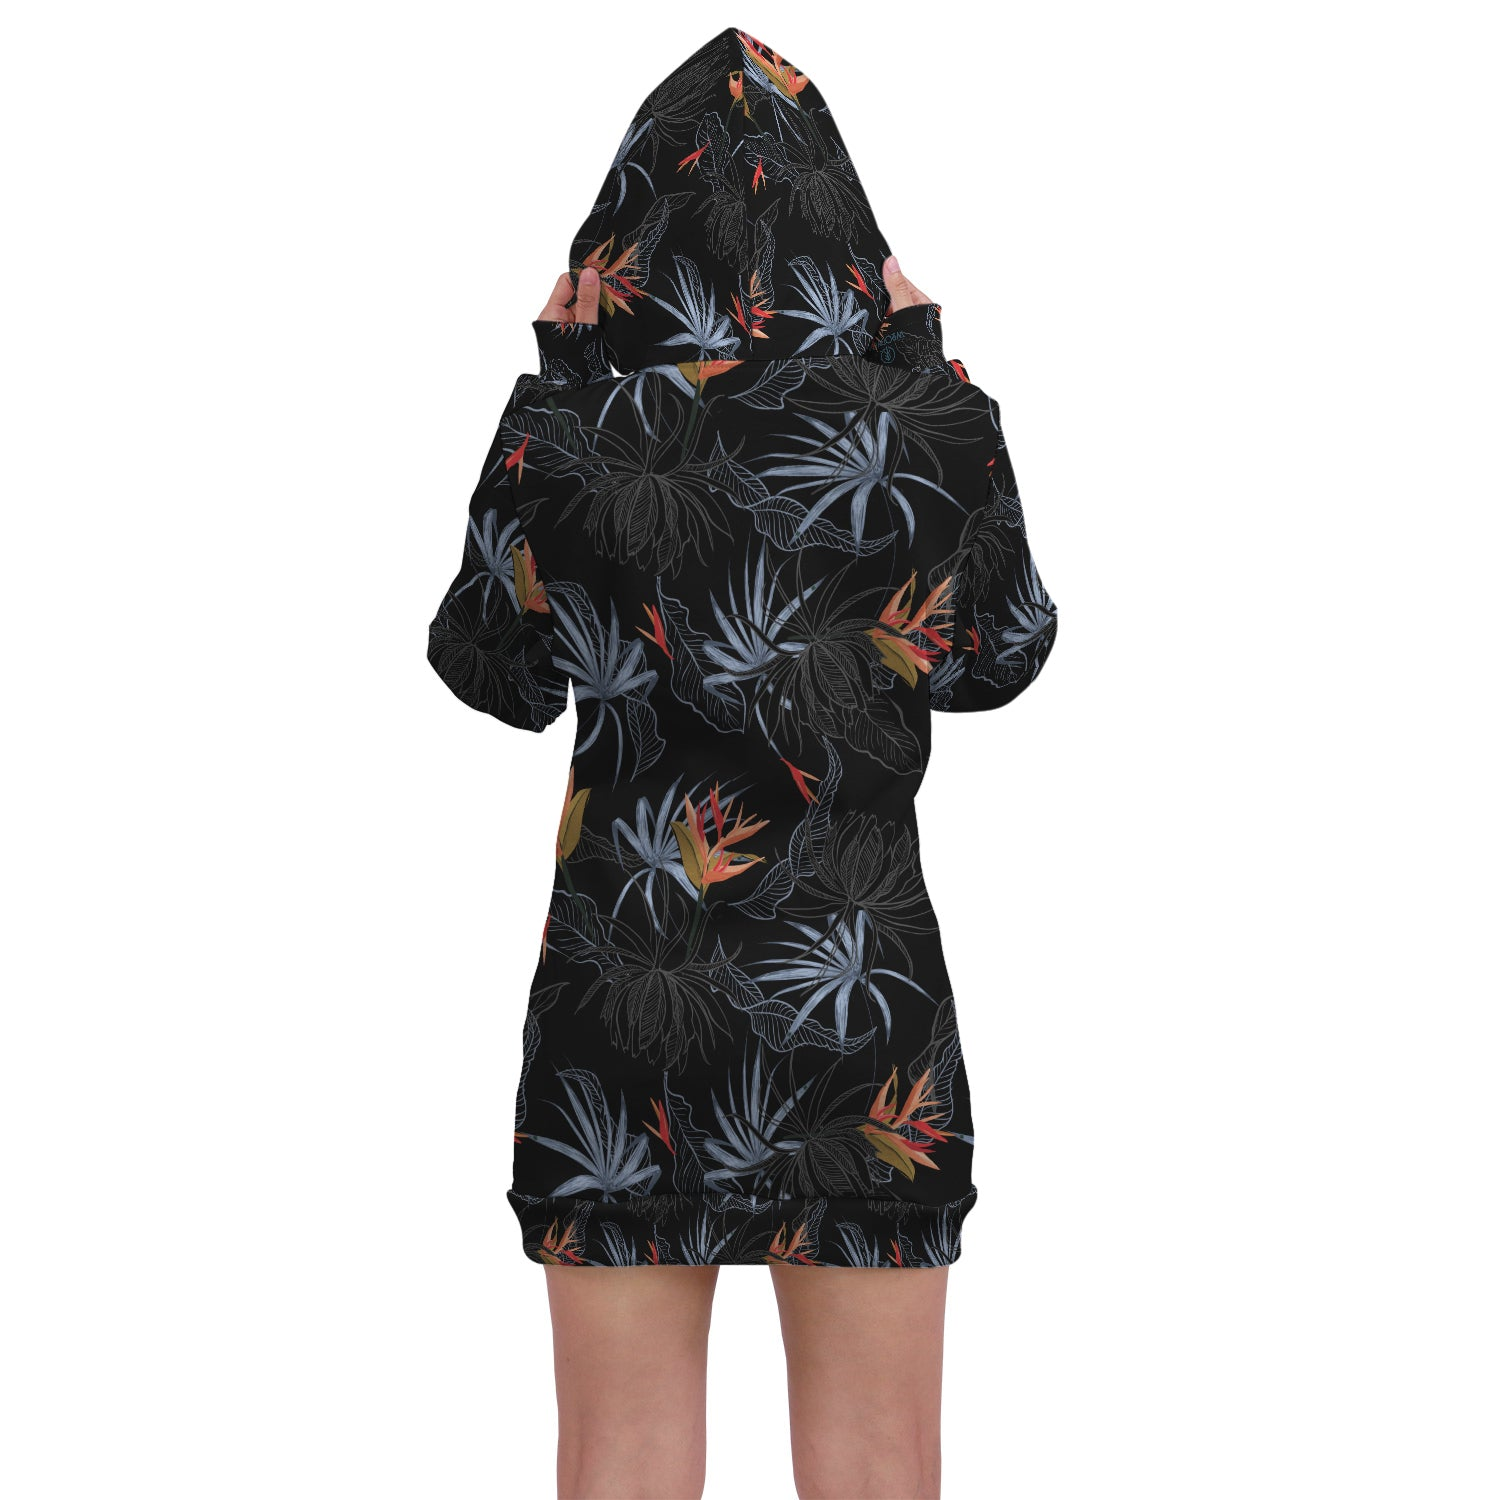 Tropic- Hoodie Dress. This custom All Over Printed hoodie dress is the perfect hoodie to stay stylish and fashionable. This hoodie has a trendy style, unique print and comfortable fit.